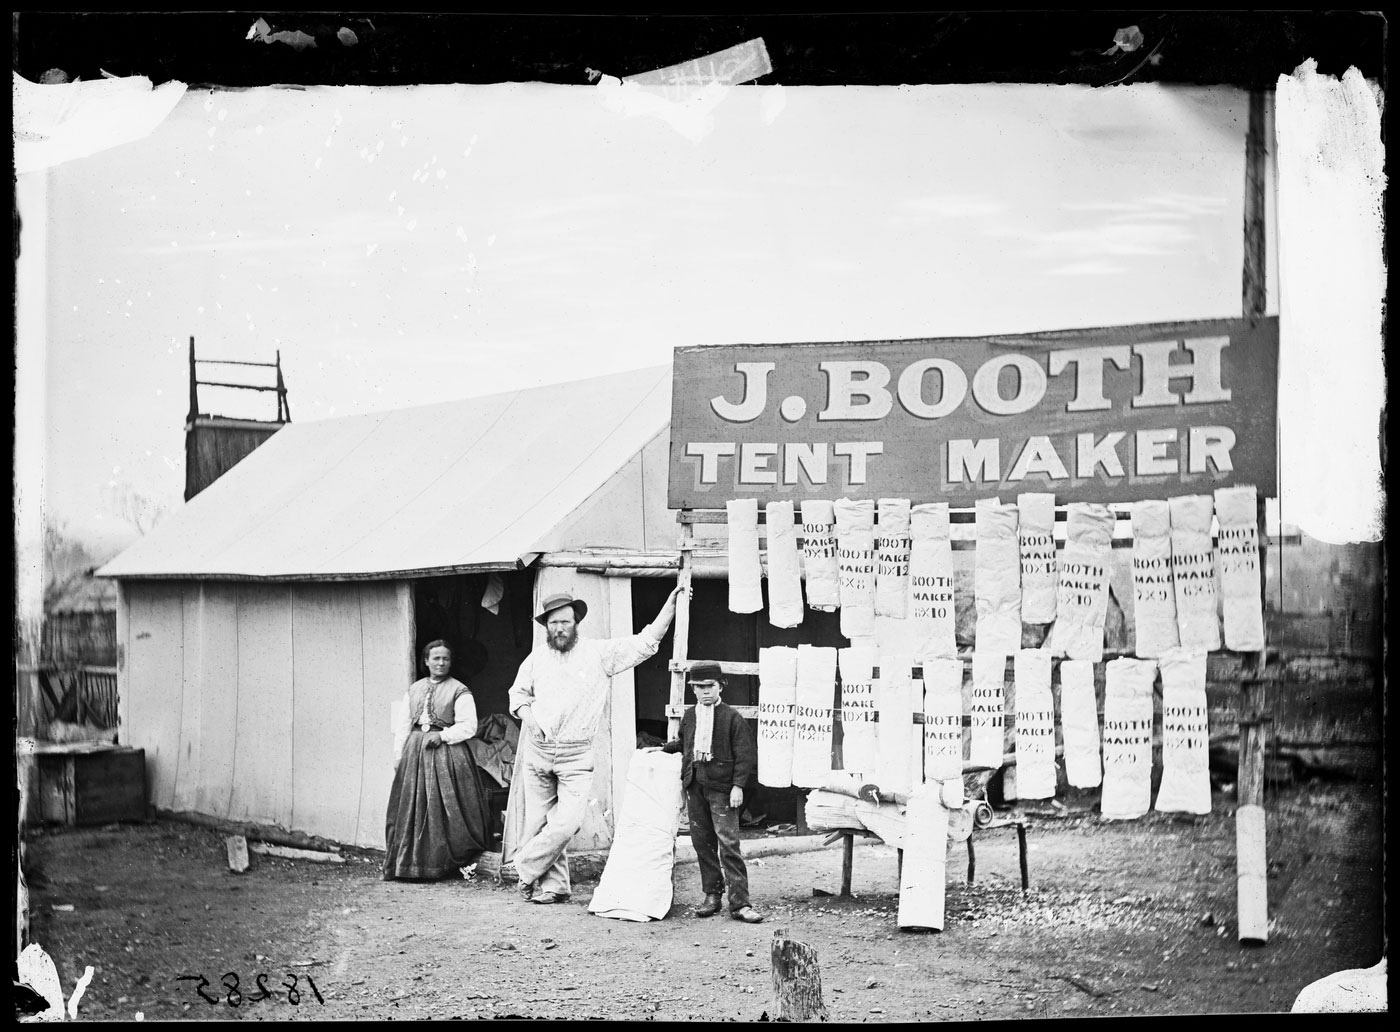 Charles Bayliss Tent city Home Rule 1872 In the early days of gold rushes miners usually lived in tents. Here tentmaker J. Booth has confidently u2026 & Charles Bayliss Tent city Home Rule 1872 In the early days of ...